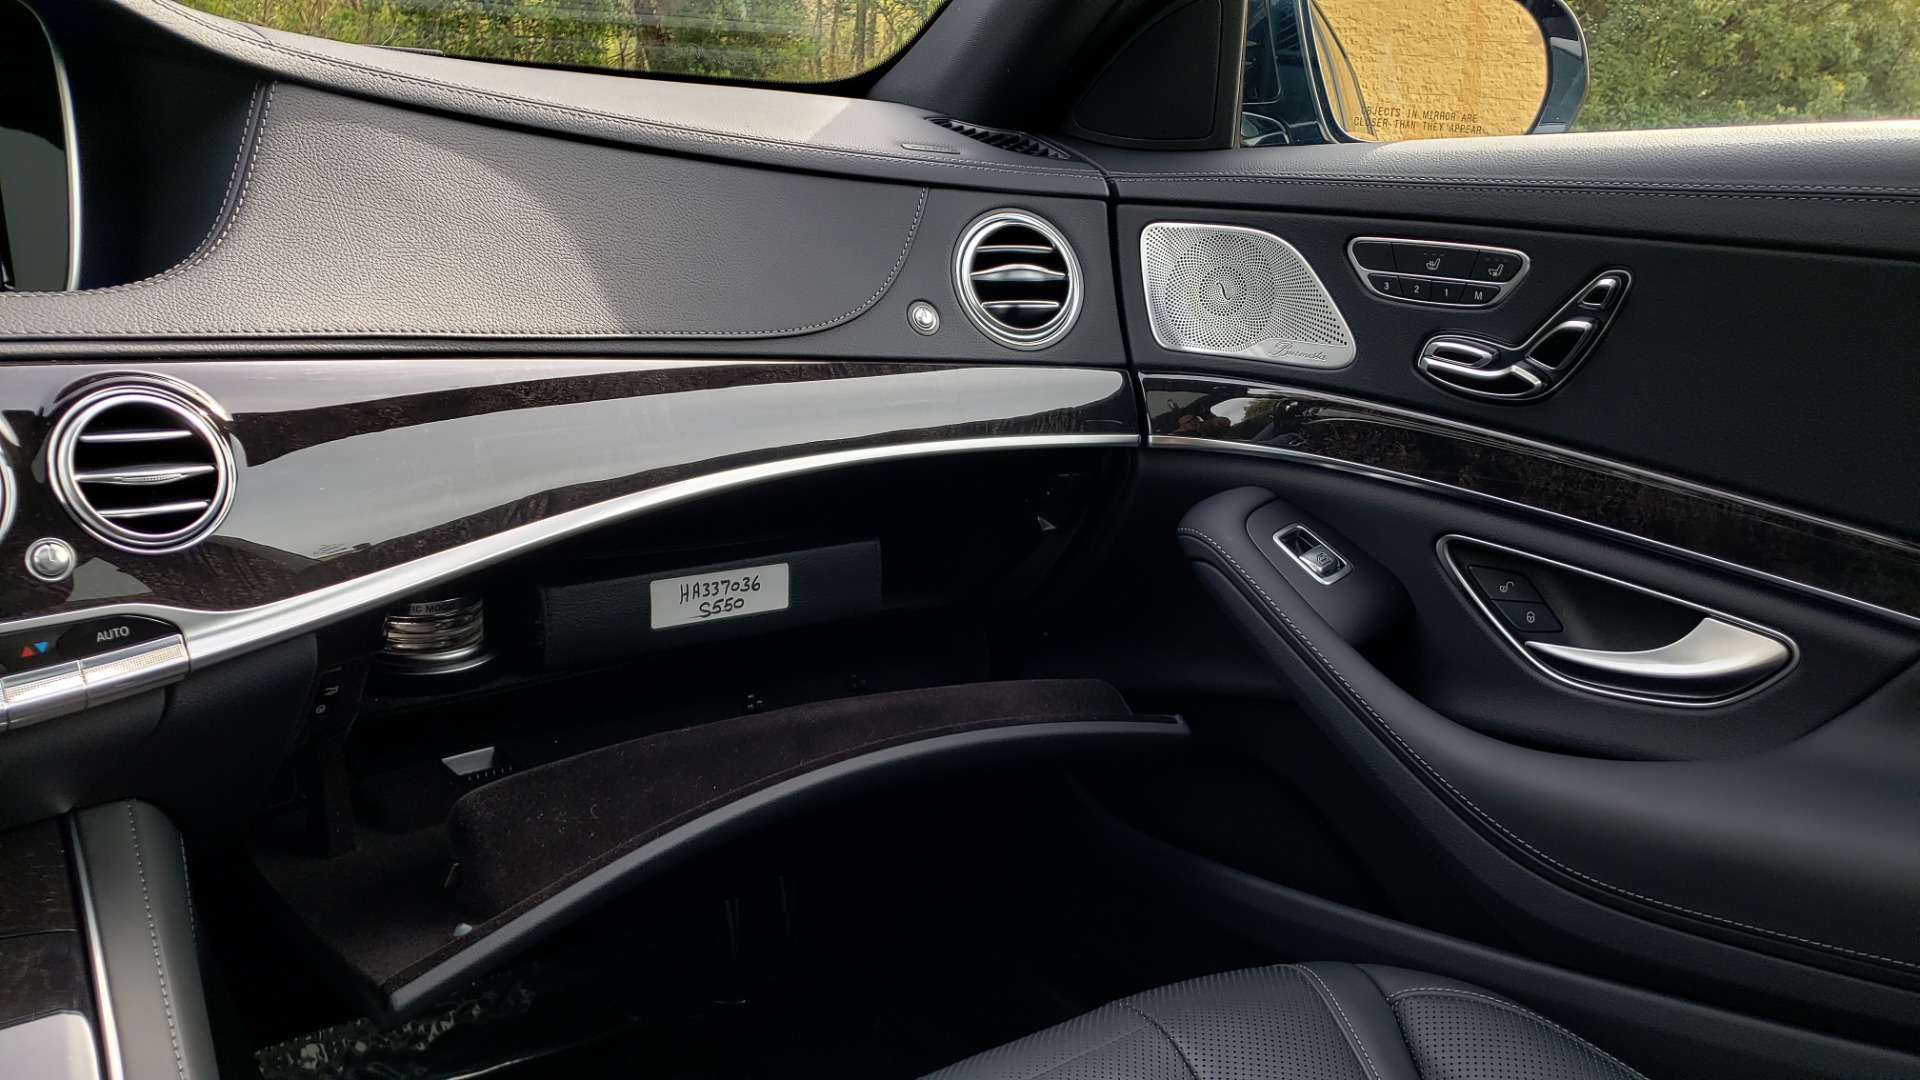 Used 2017 Mercedes-Benz S-CLASS S 550 4MATIC SPORT / PREM PKG / WARMTH & COMFORT / KEYLESS-GO for sale Sold at Formula Imports in Charlotte NC 28227 57